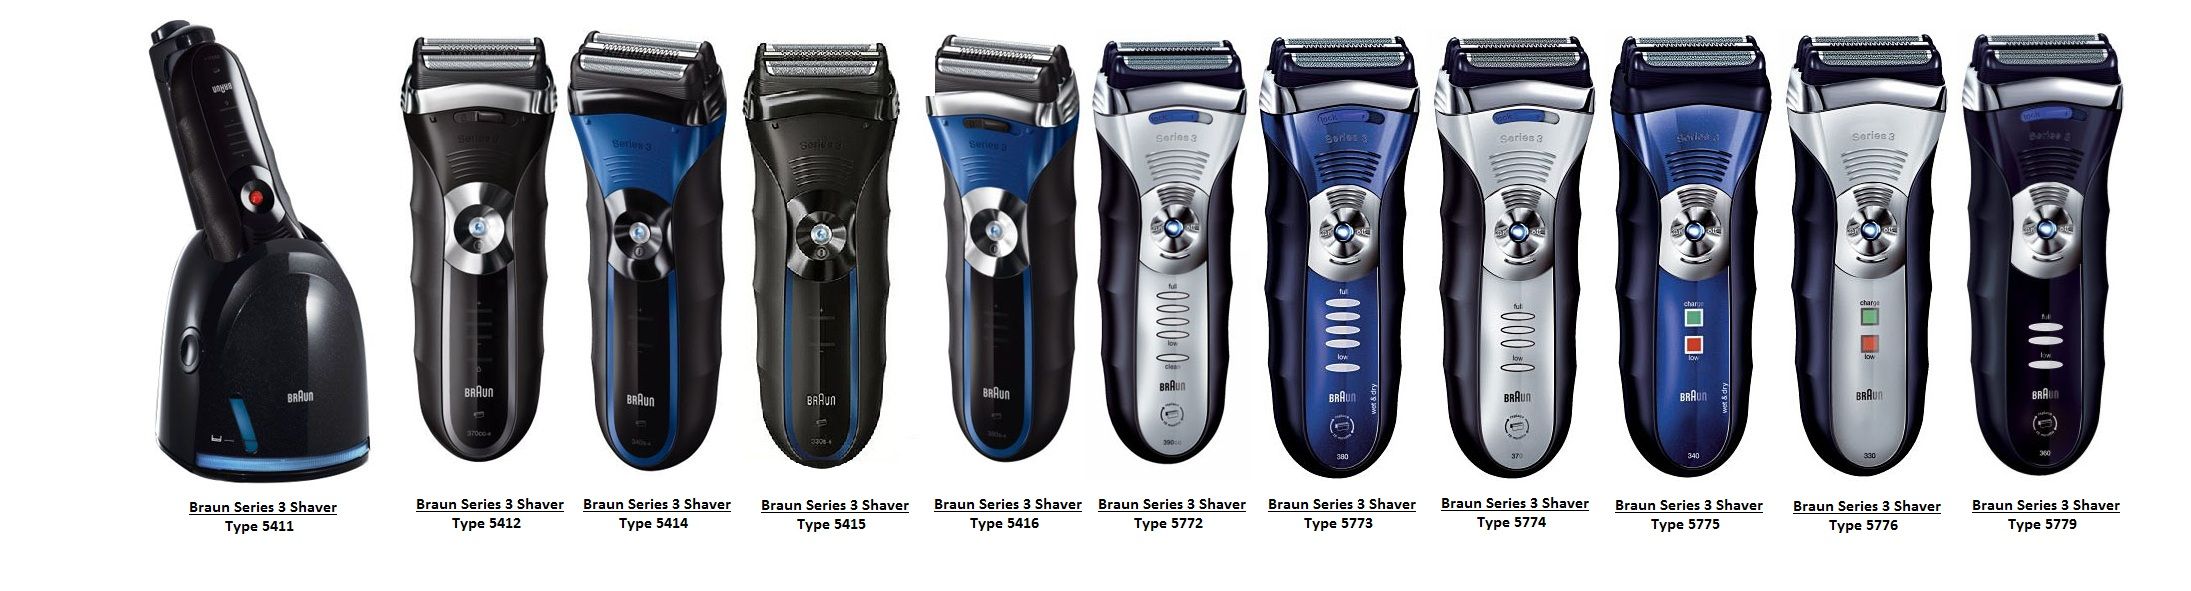 Braun Series 3 electric shaver type  5773, 5774, 5775, 5776, 5779 and 5784